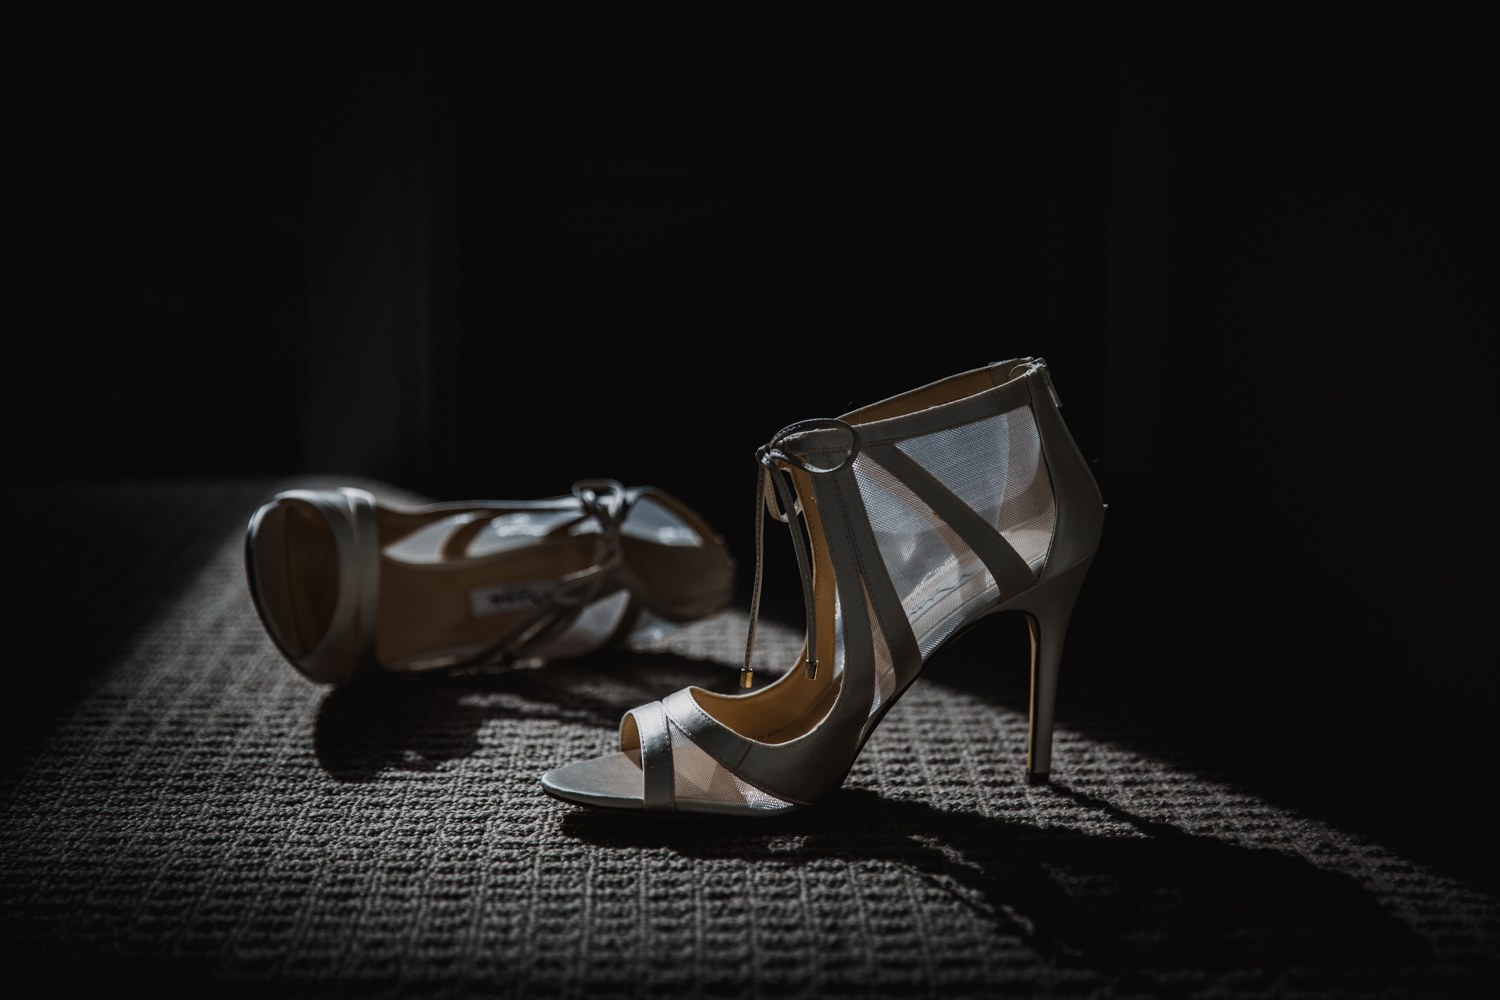 An artistic image of a Bride's shoes taken by Mala Photography, an Auckland based wedding photographer. The wedding was at Markovina Vineyard Estate In Kumeu, Auckland.